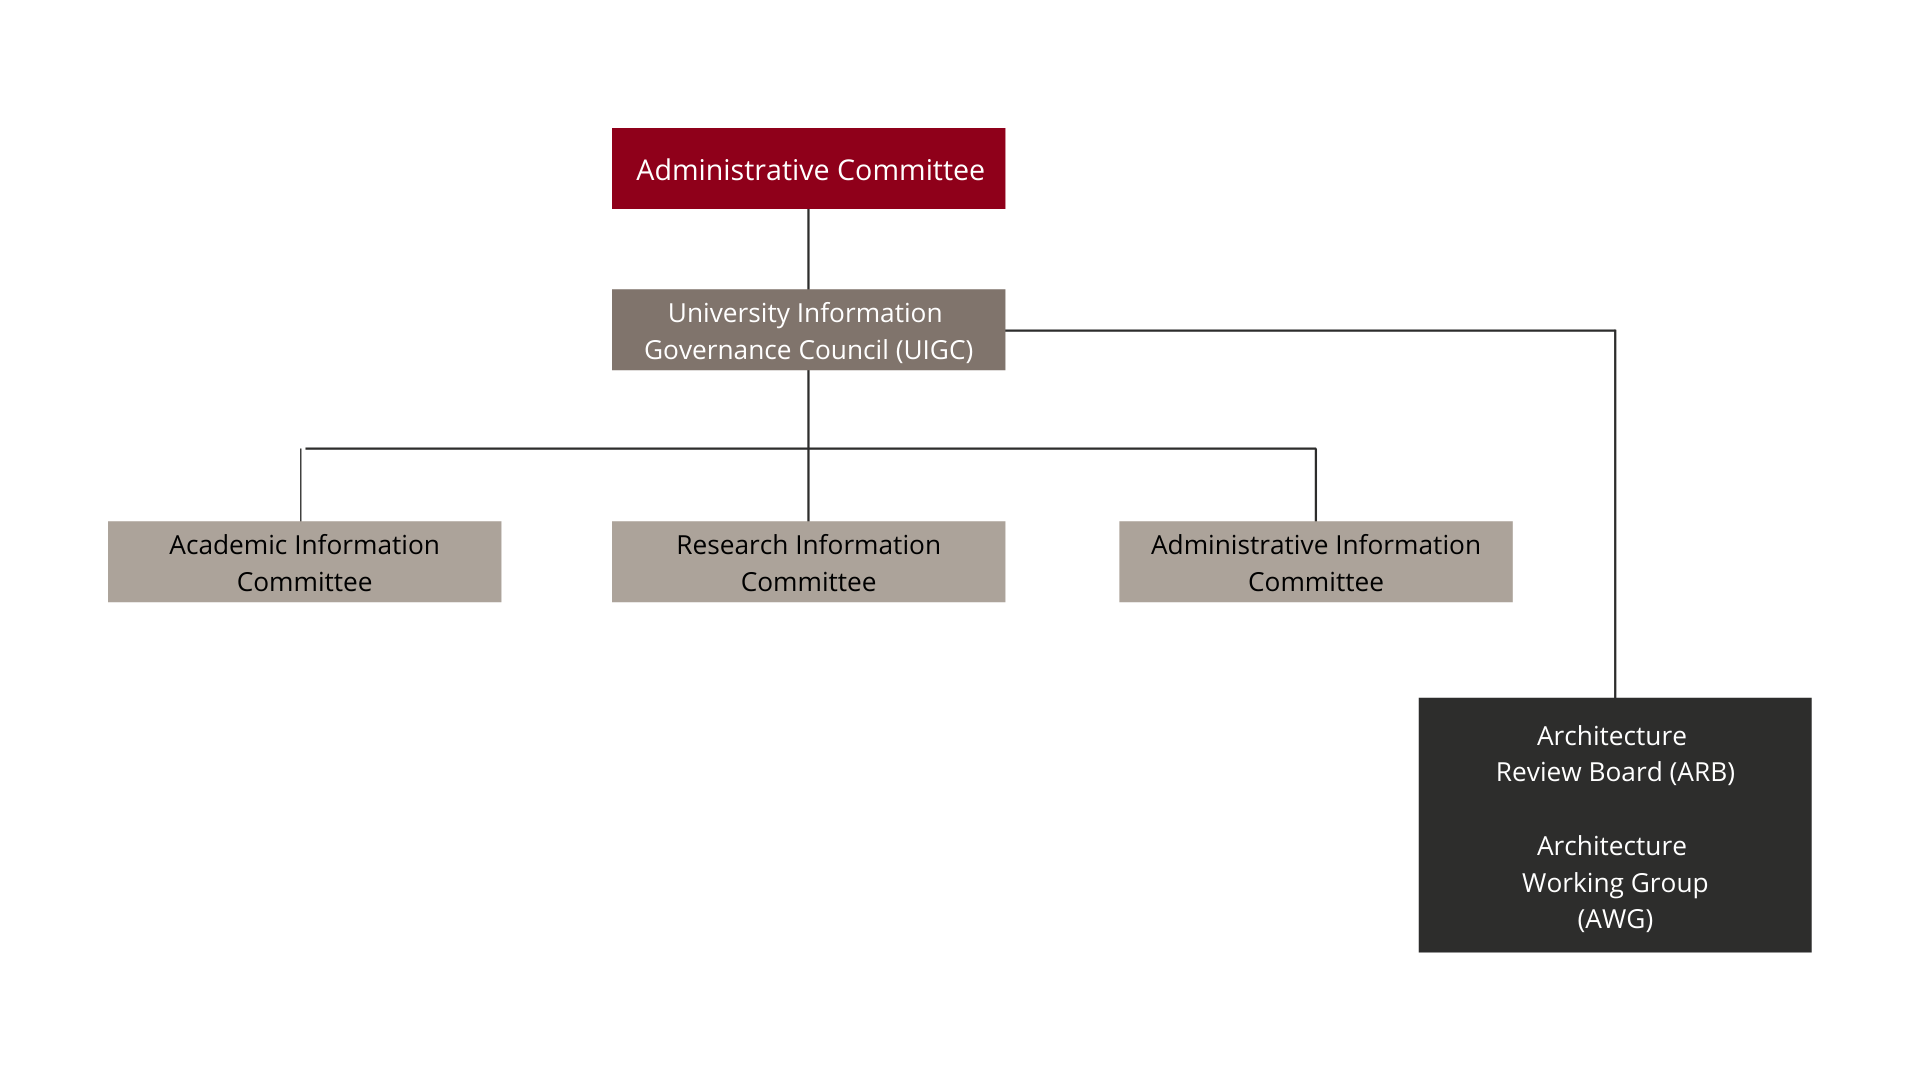 Administrative committee org chart